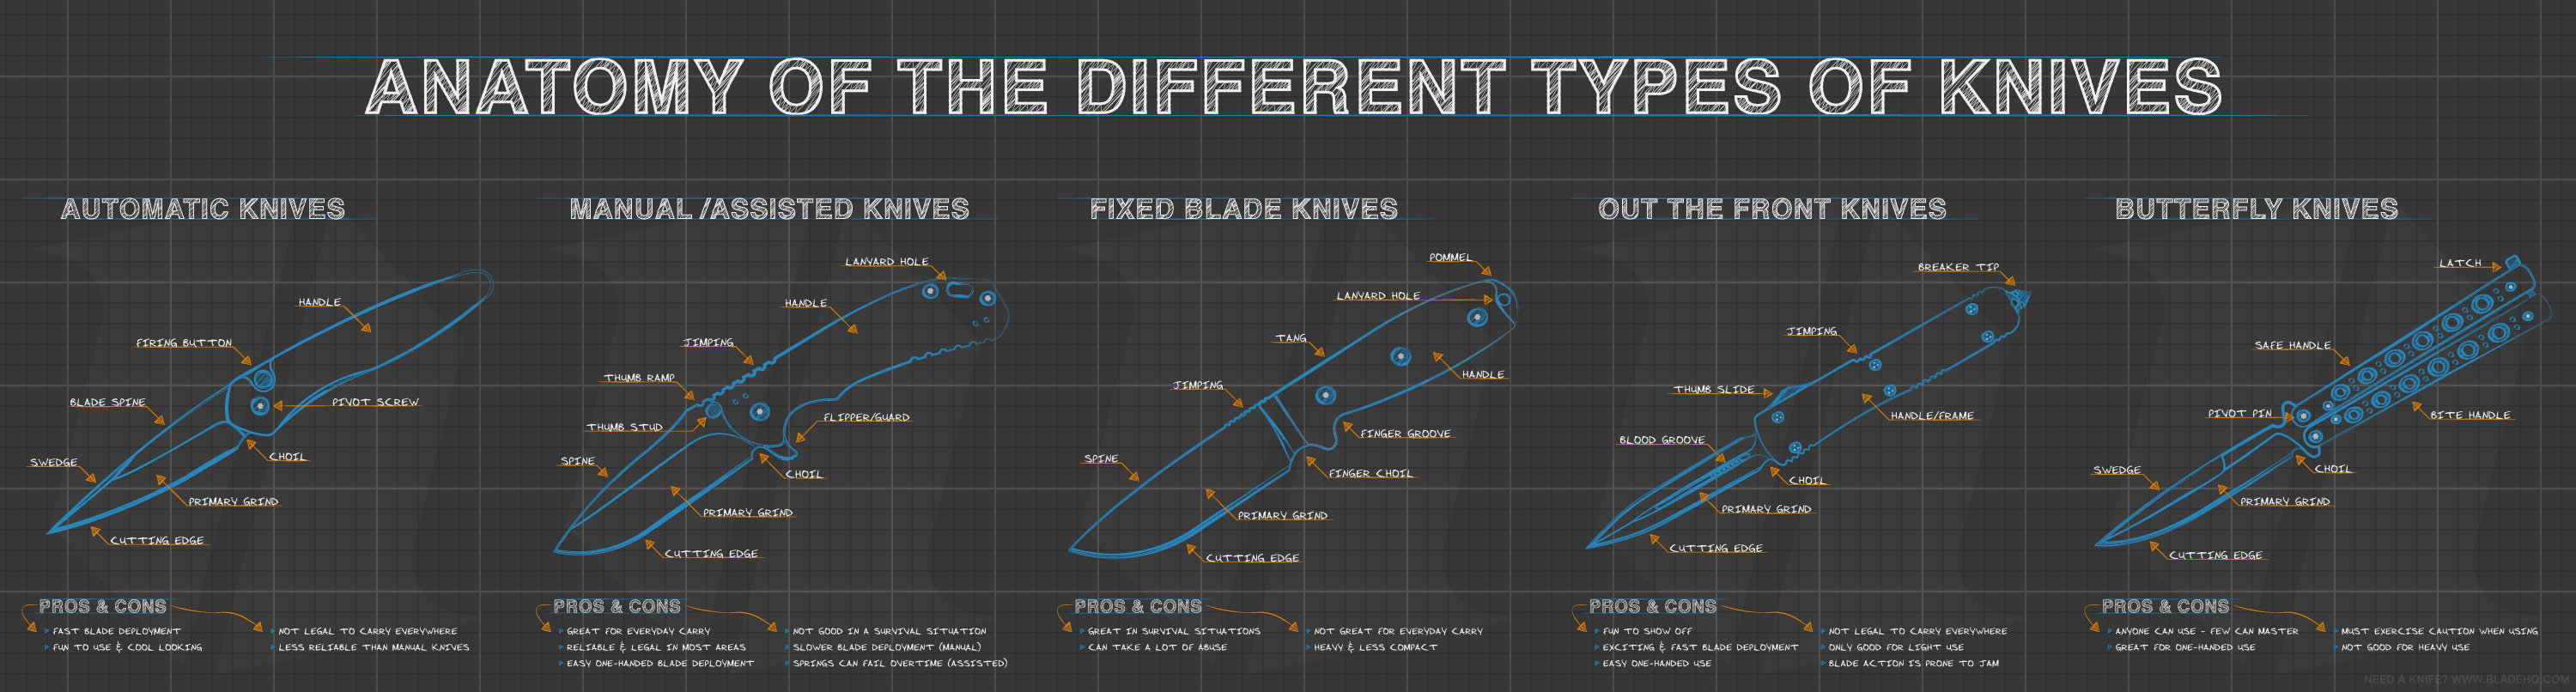 Anatomy of the Different Types of Knives